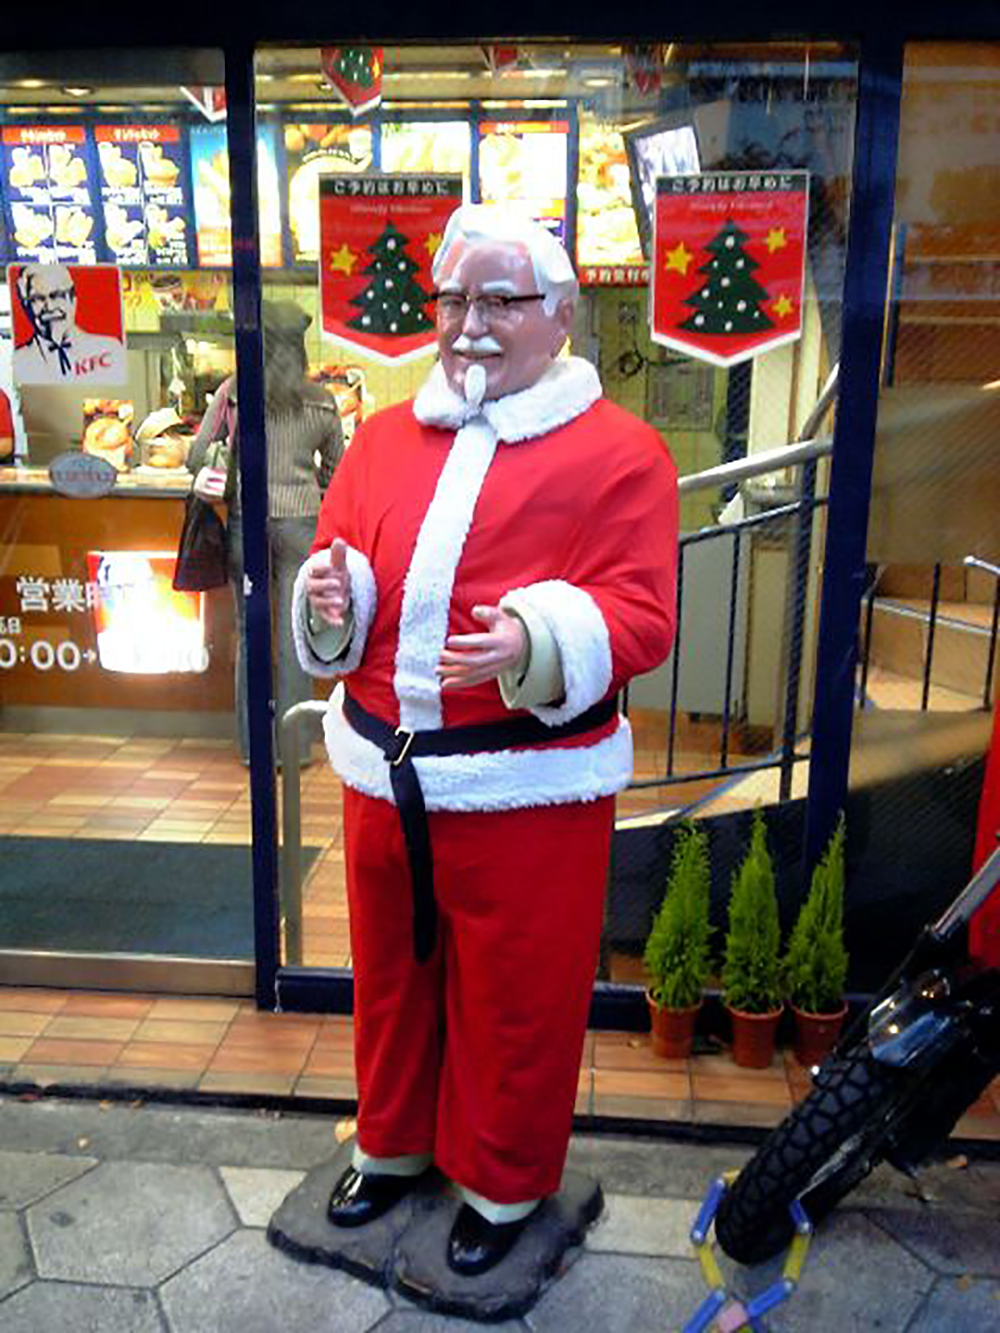 Kfc Japan Christmas.Eating Kentucky Fried Chicken Is A Christmas Tradition For